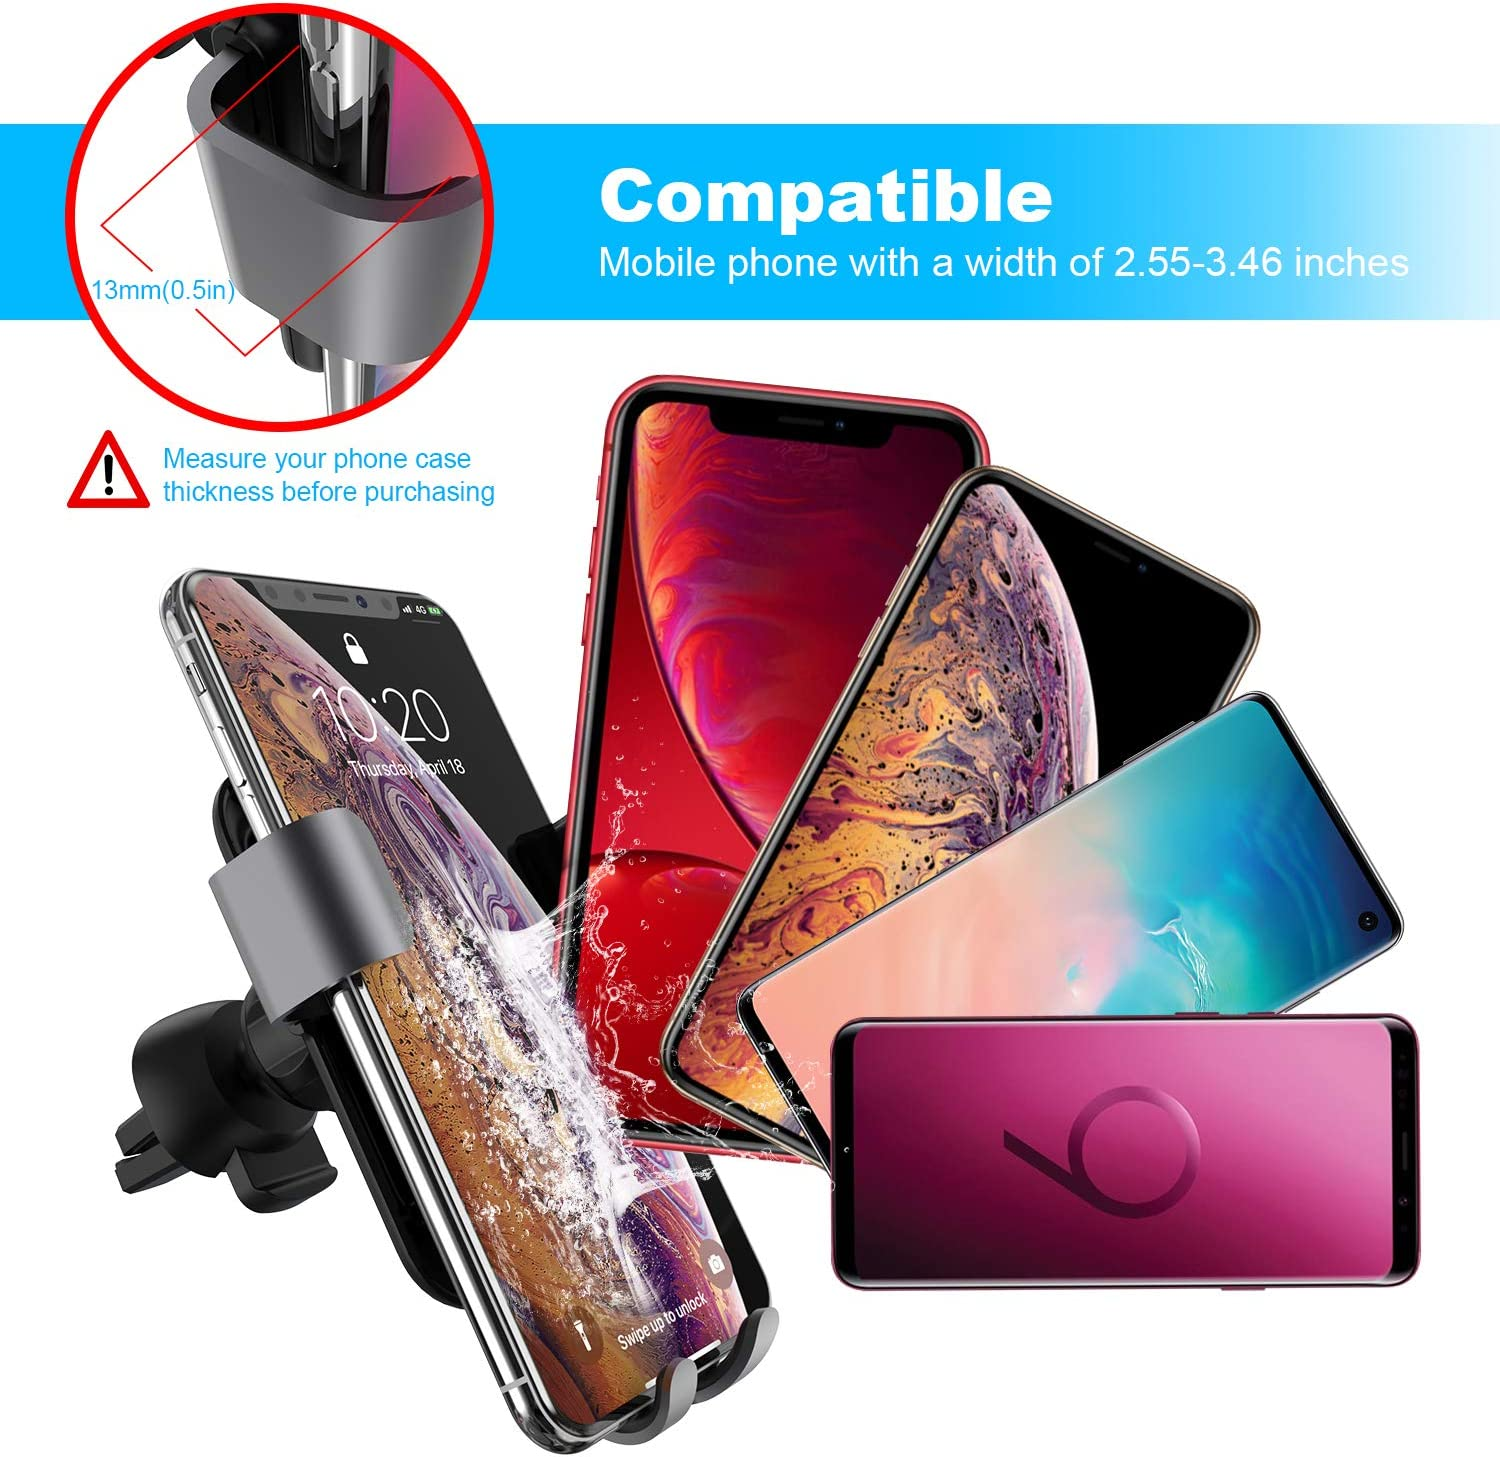 Fast Charging Wireless Car Mount with Quick Charging 3.0 Car Charger Car Phone Mount for iPhone Xs MAX//XR//XS//X//8//8 Plus Samsung Galaxy S10//S9//S8 Air Vent Holder Included Squish Wireless Car Charger